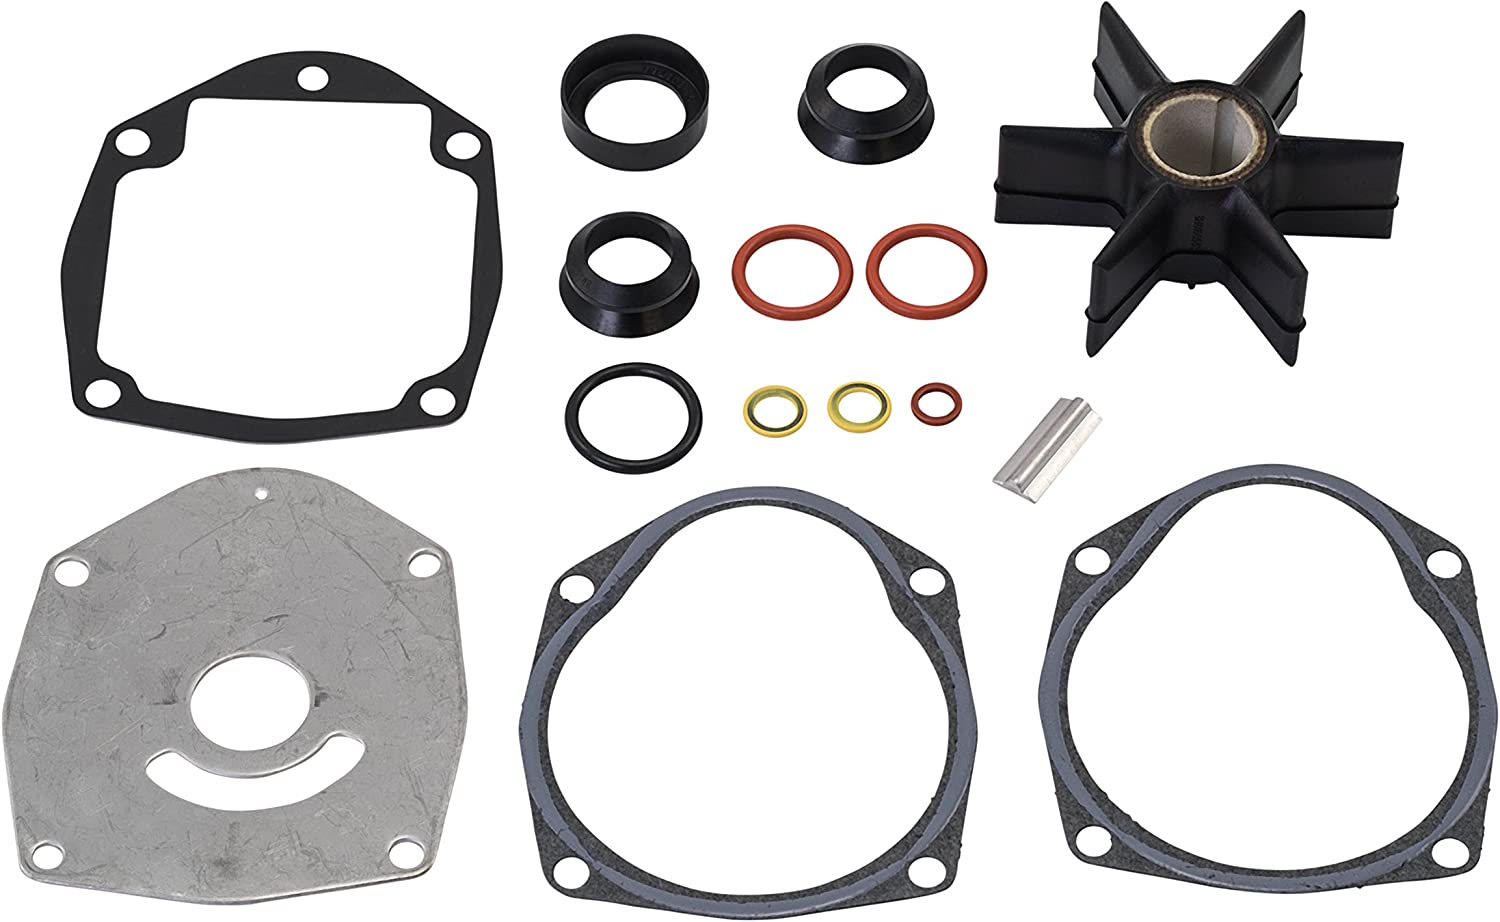 Quicksilver 8M0100526 Water Pump Repair OFFicial mail order and Kit - Marine Same day shipping Mercury